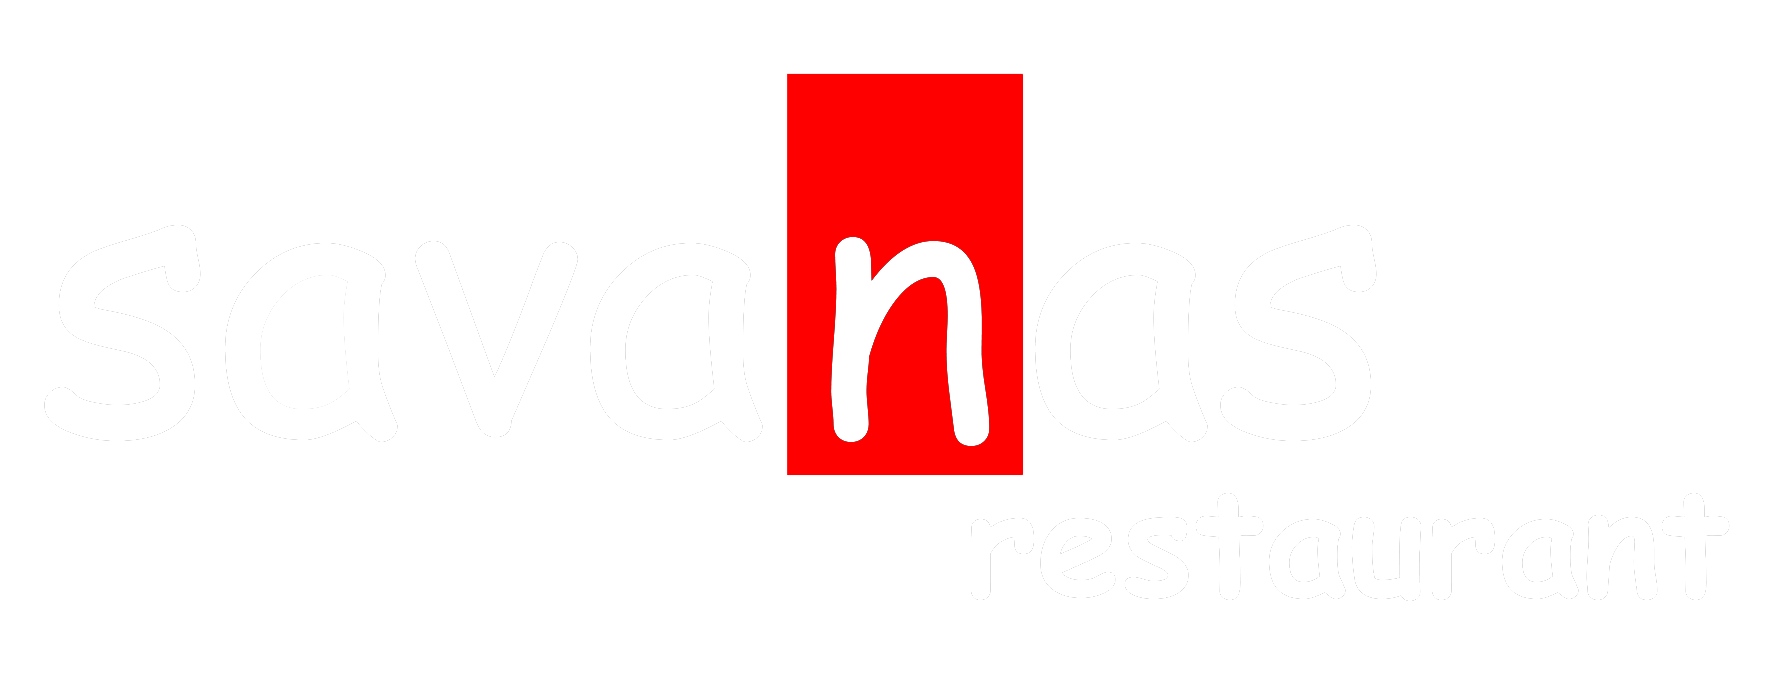 Savanas Restaurant